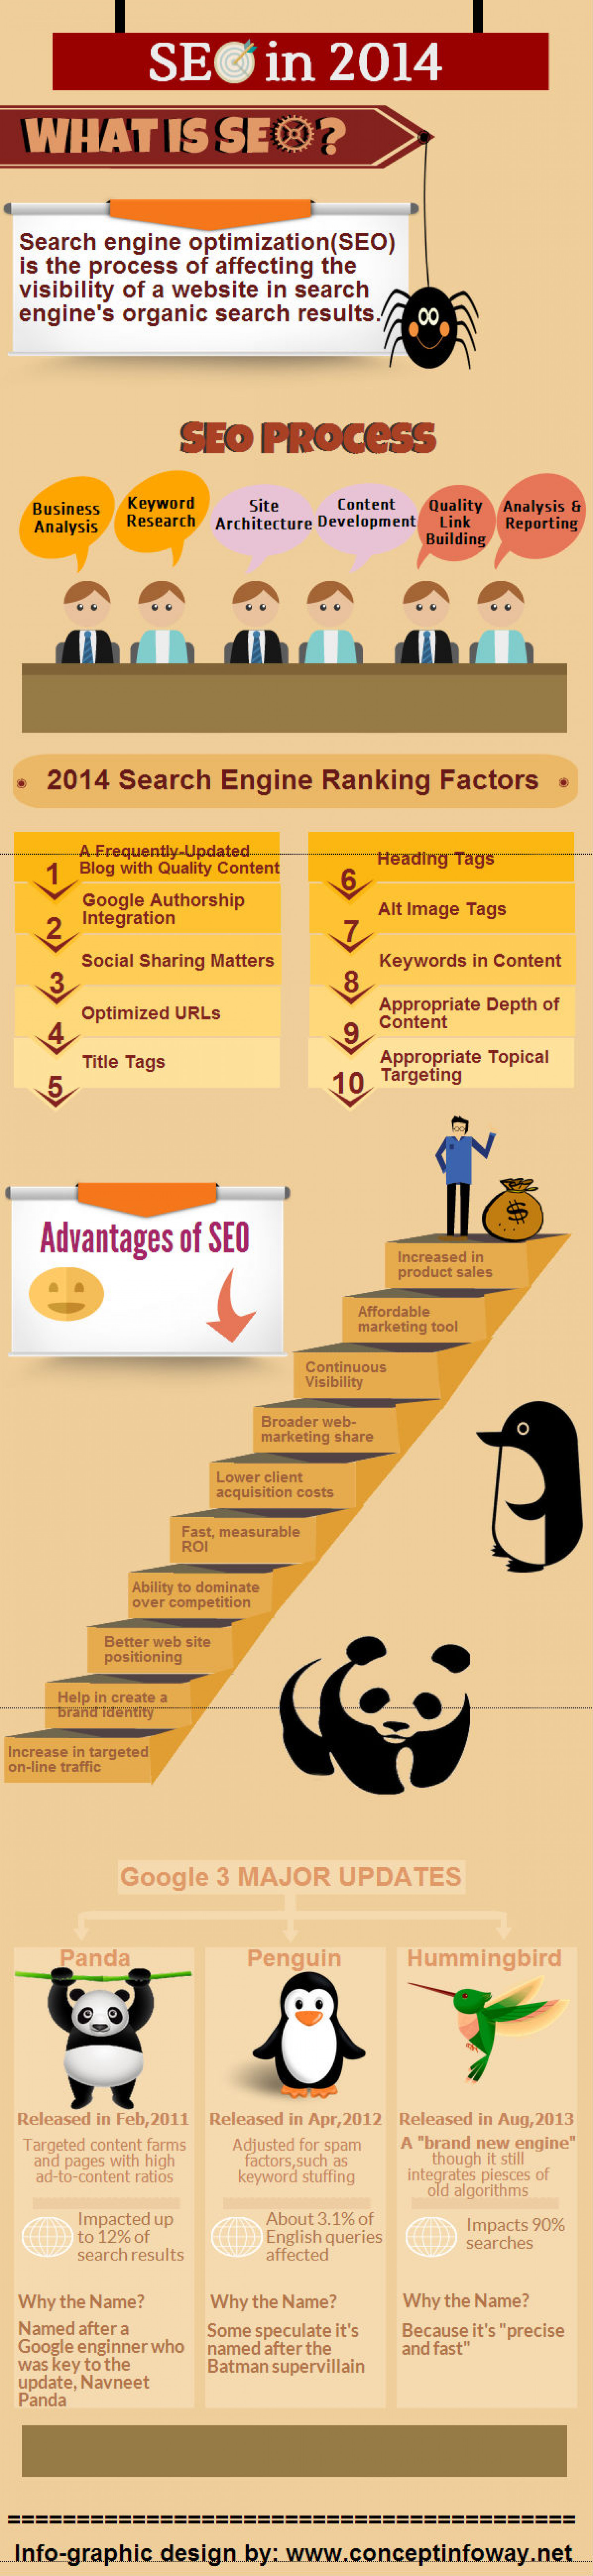 SEO in 2014 Infographic